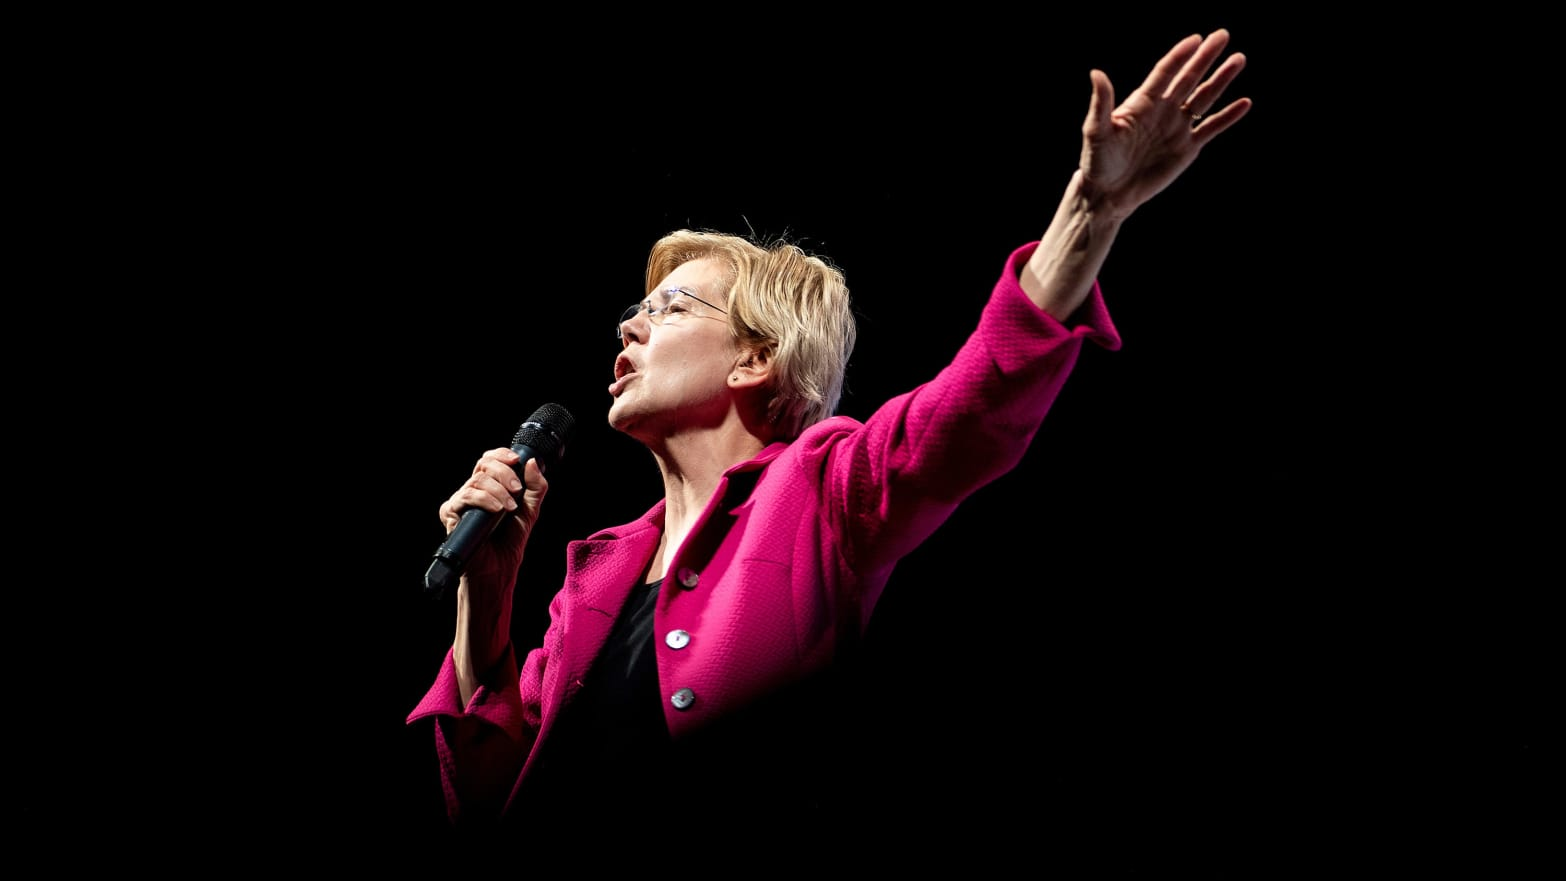 Elizabeth Warren Calls for Wiping Out Student-Loan Debt, Making College Free